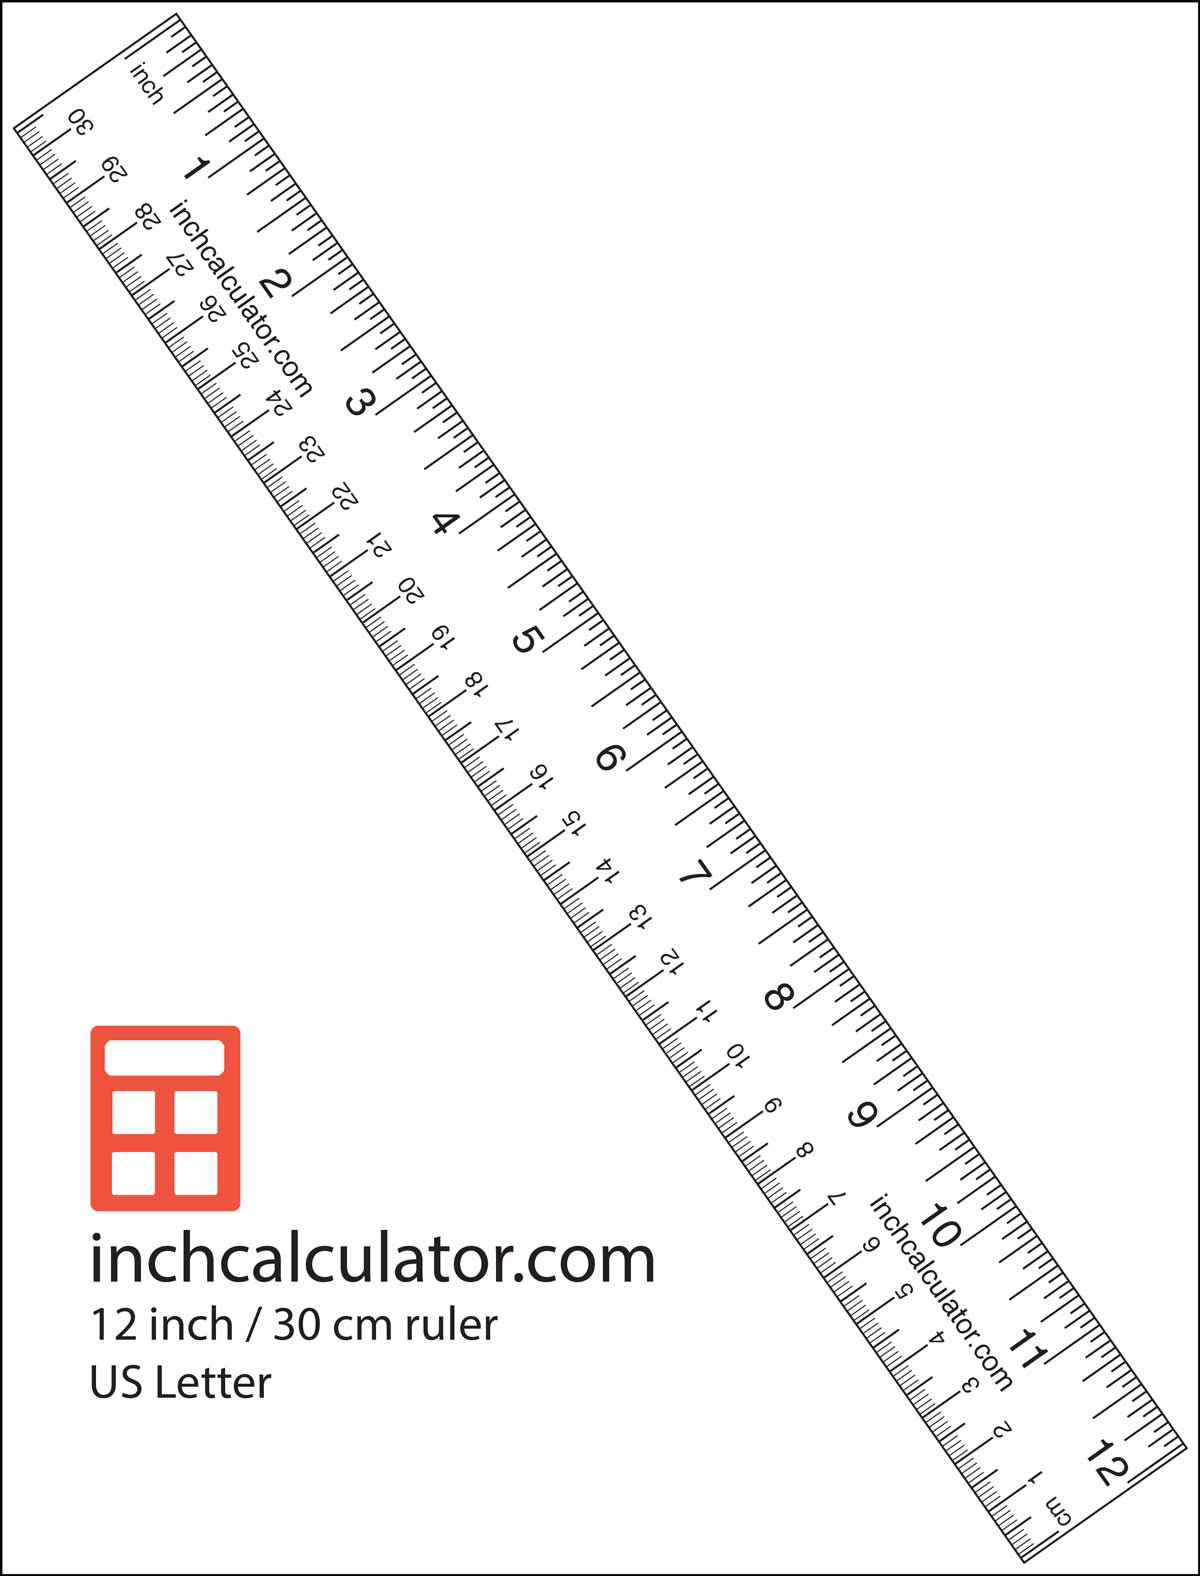 Monster image with printable ruler inches